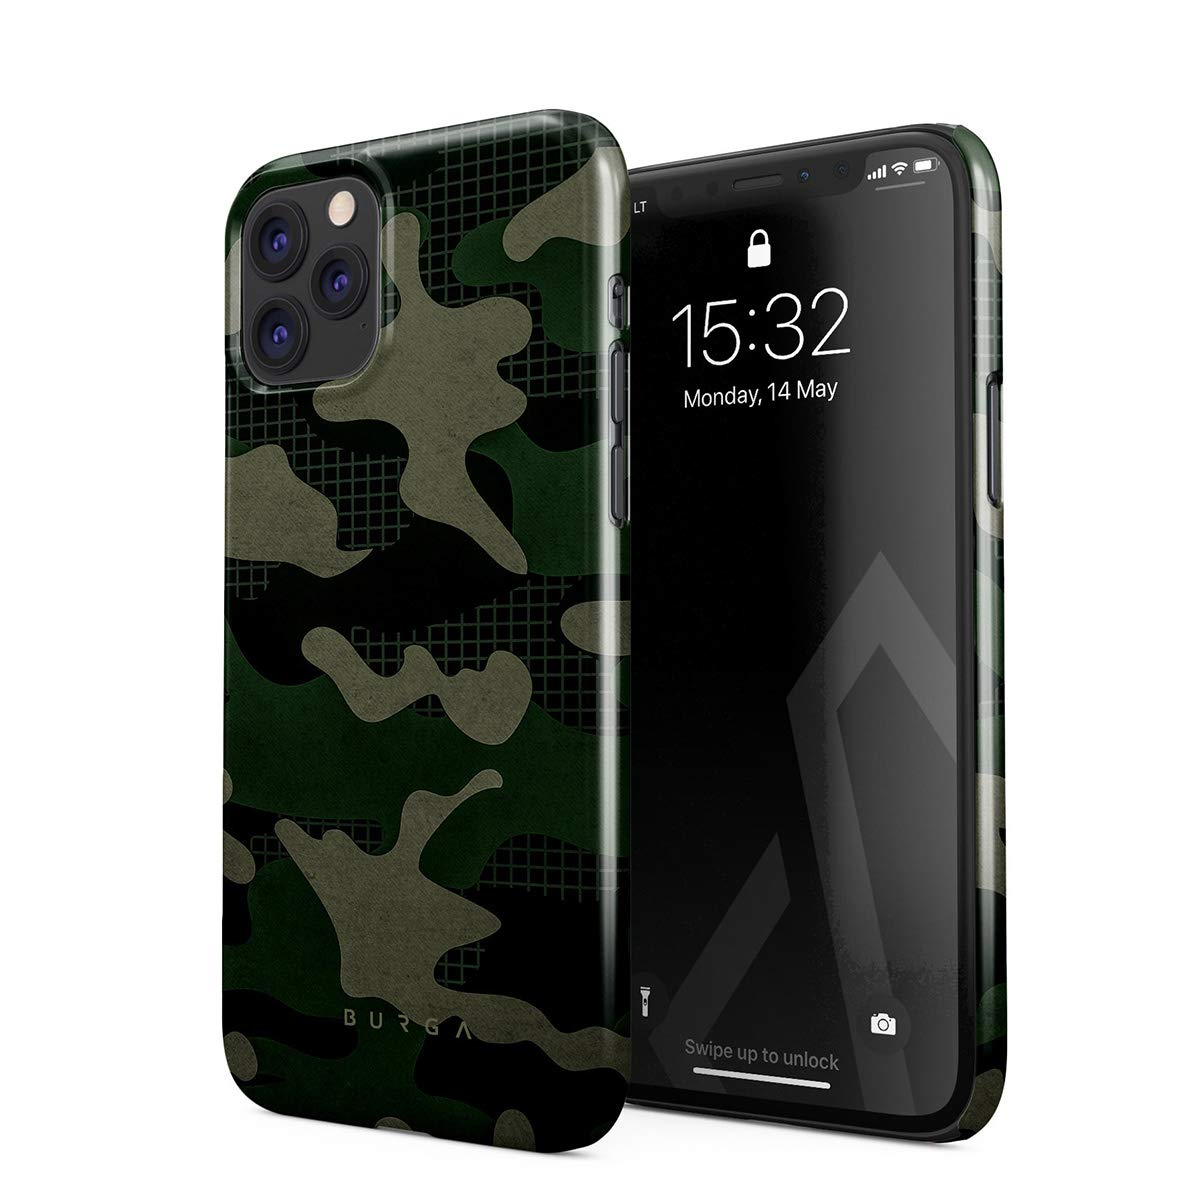 BURGA Phone Case Compatible with iPhone 11 PRO MAX - Jungle Military Green Camo Camouflage Cute Case for Women Thin Design Durable Hard Plastic Protective Case